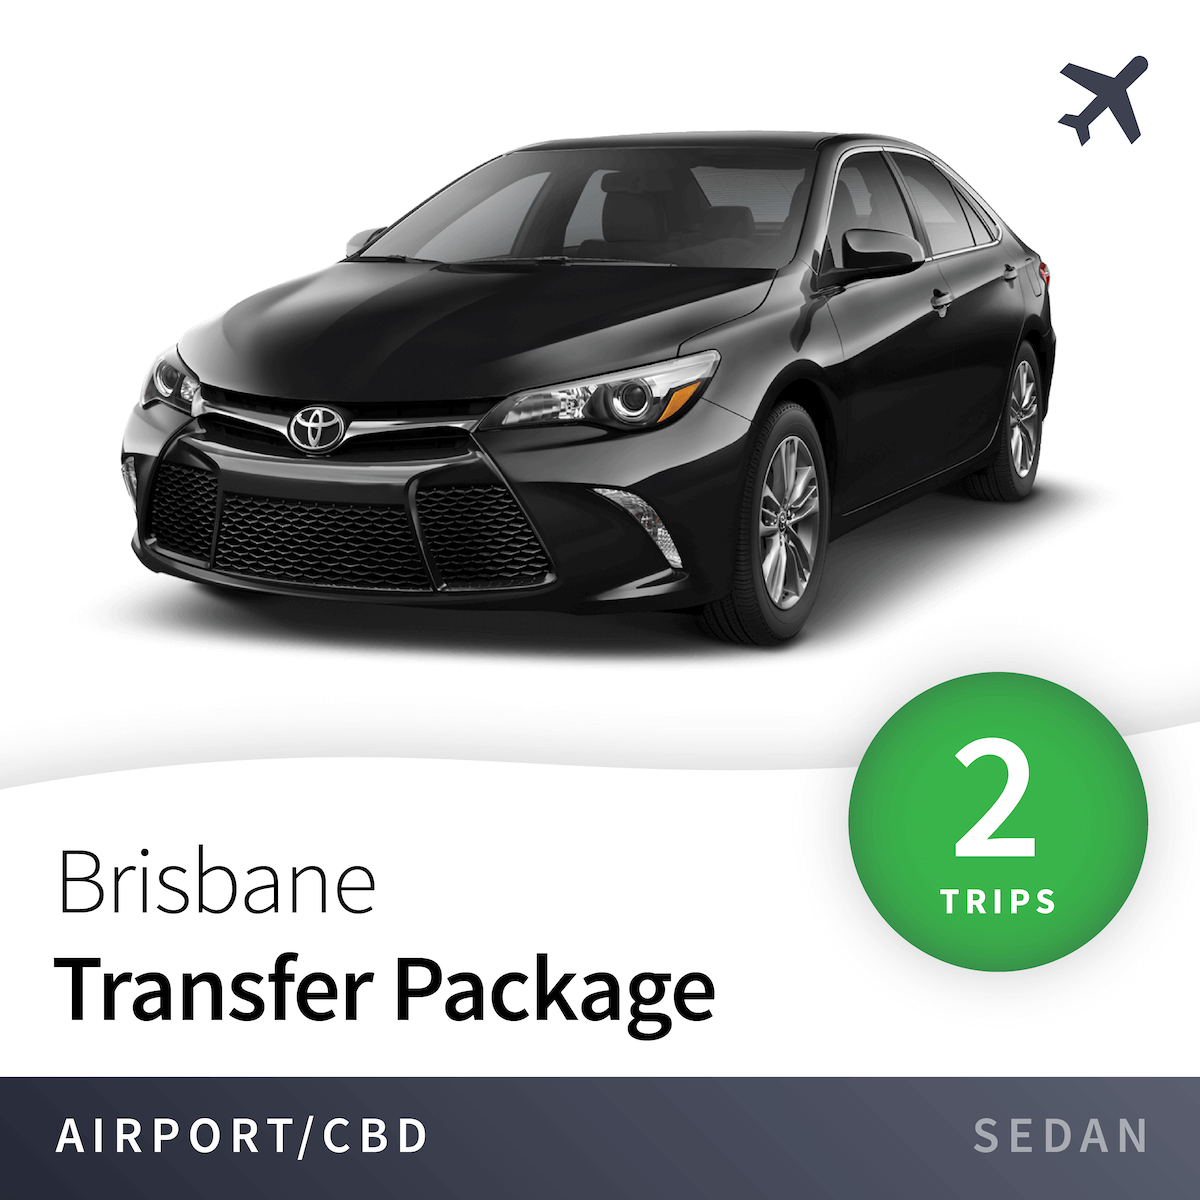 Brisbane Airport Transfer Package - Sedan (2 Trips) 8